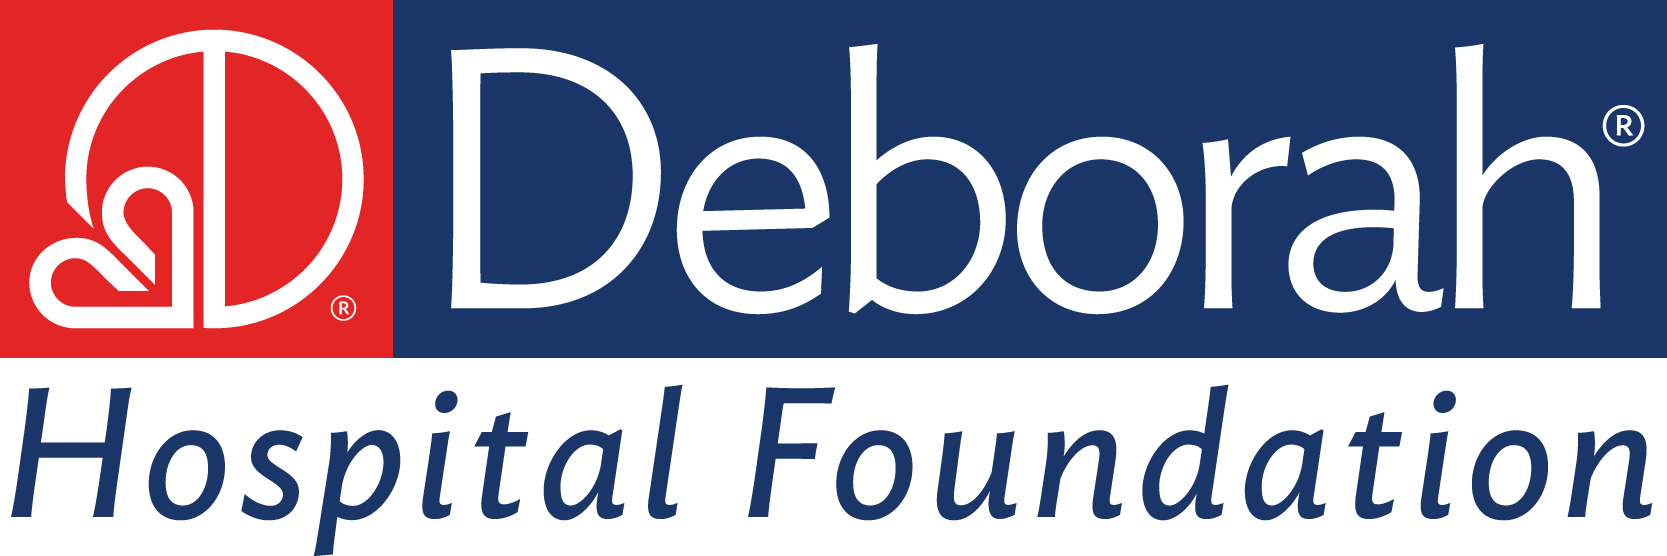 official Deborah Foundation Logo 300 dpi horizontal